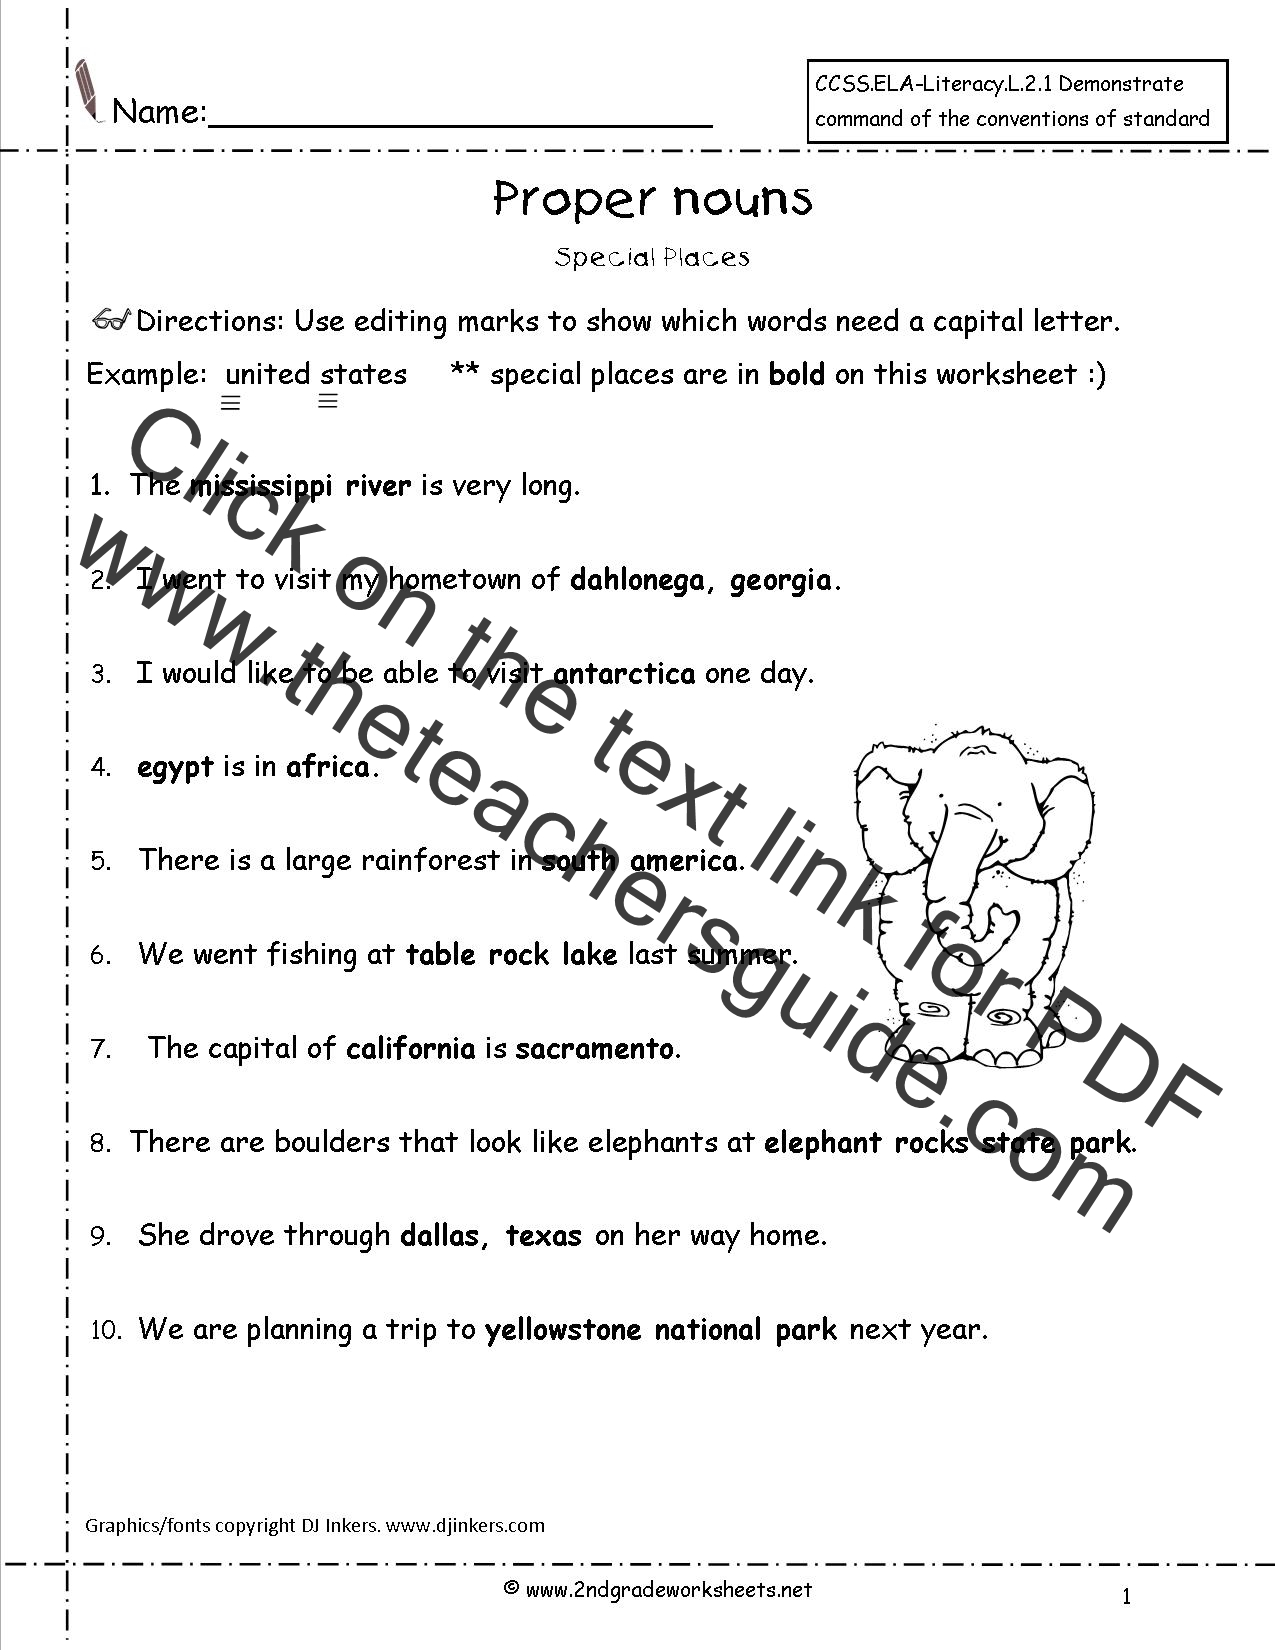 mon and Proper Nouns Worksheets from The Teacher's Guide further Proper and  mon noun worksheet moreover mon and Proper Nouns Worksheets from The Teacher's Guide likewise Image Of Blank  mon Nouns Worksheet Answers Underline The further English Proper Nouns Worksheets Resources together with mon and Proper Nouns Worksheet additionally mon And Proper Nouns Worksheets For Grade 2 Pdf as well mon   Proper Noun Worksheets by Meet Me in the Middle   TpT further mon and Proper Noun Worksheet by Ms Third Grade   TpT besides Fun with  mon and Proper Nouns Worksheets   Worksheets   Pinterest also Proper Noun Worksheets in addition mon and Proper Nouns Worksheets from The Teacher's Guide besides Nouns Worksheets   Proper and  mon Nouns Worksheets additionally mon and Proper Nouns Worksheets from The Teacher's Guide as well  likewise . on common and proper noun worksheets